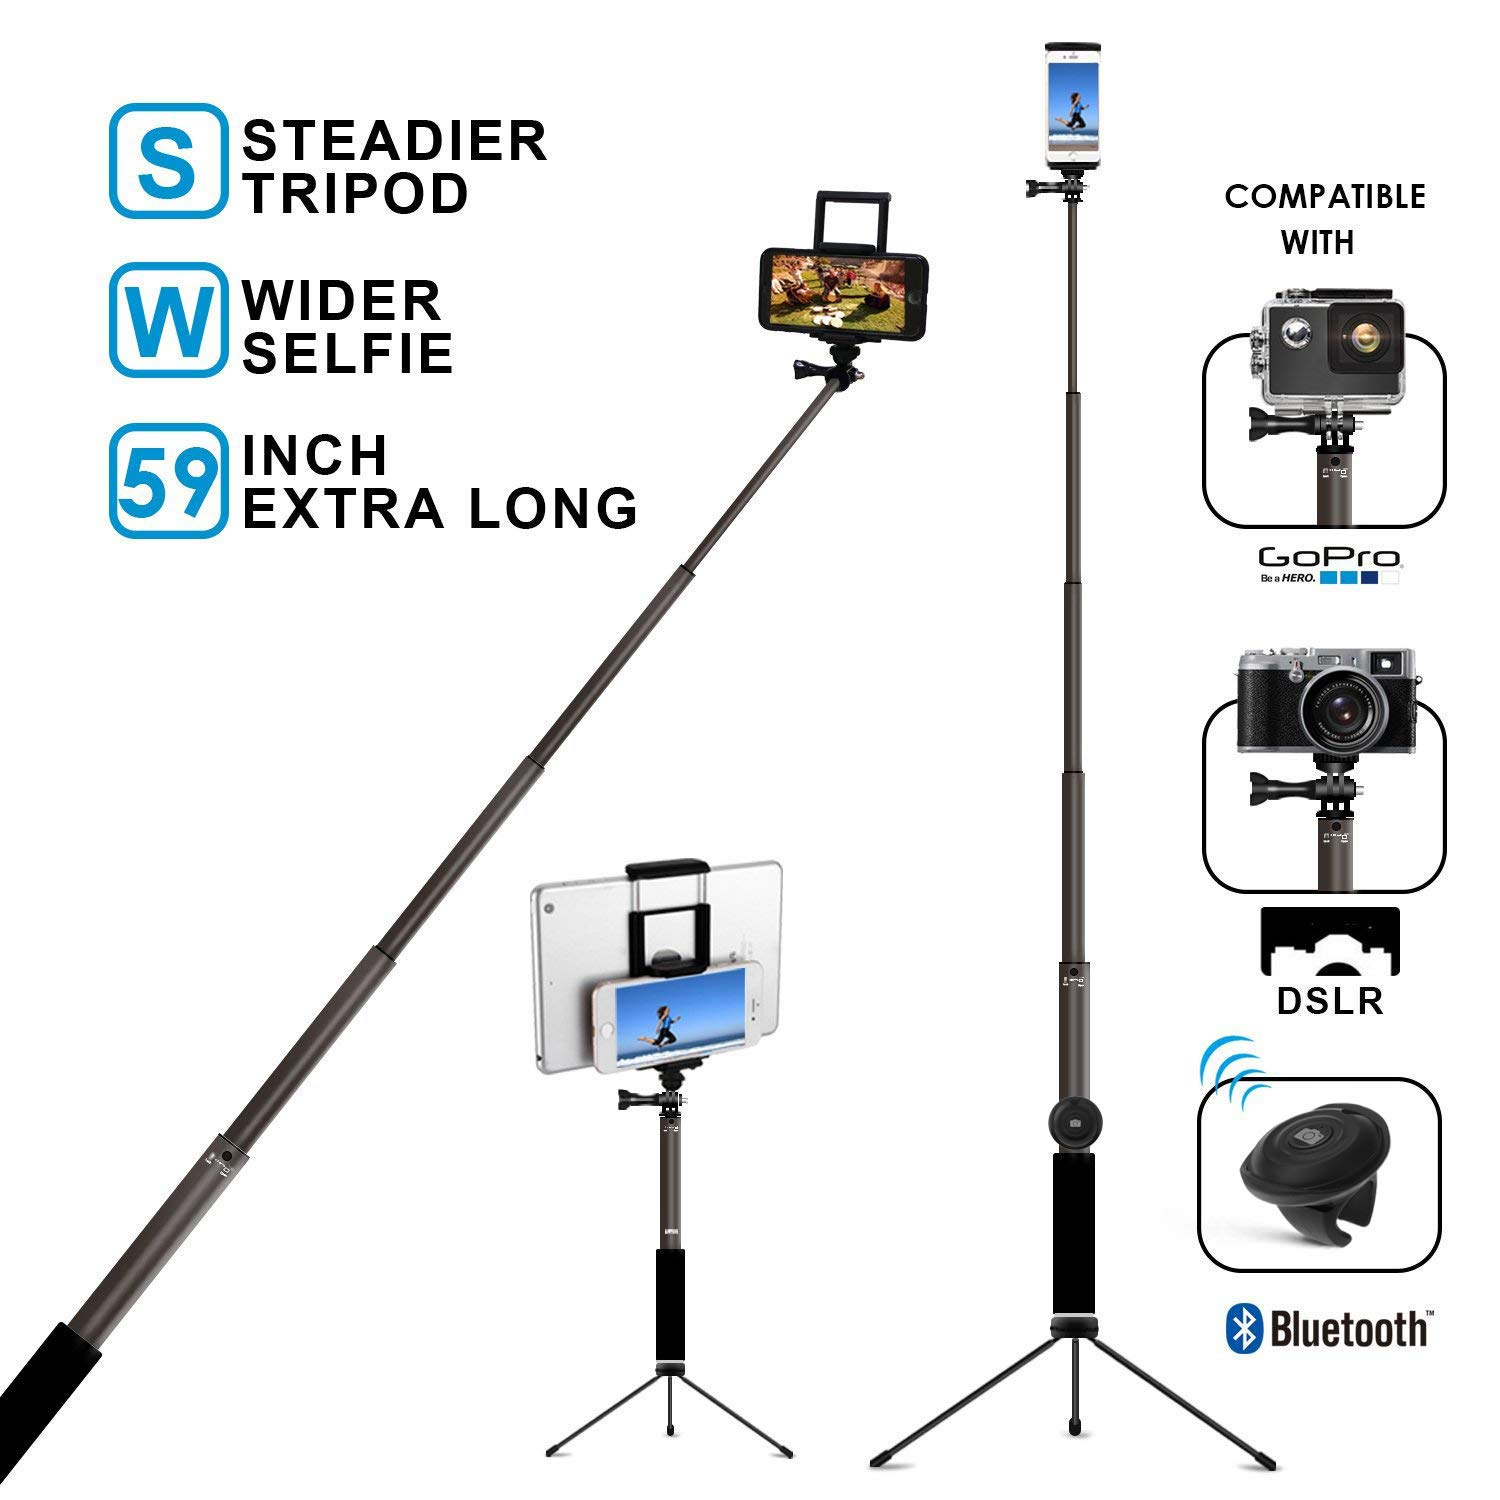 Bluetooth Selfie Stick with Tripod, Remote 59Inch MFW Extendable Monopod with Tripod Stand for iPhone X/XS max/XR/XS/8/7/6/Plus,Tablet,Samsung S7/S8/S9,Android,GoPro Cameras by MFW